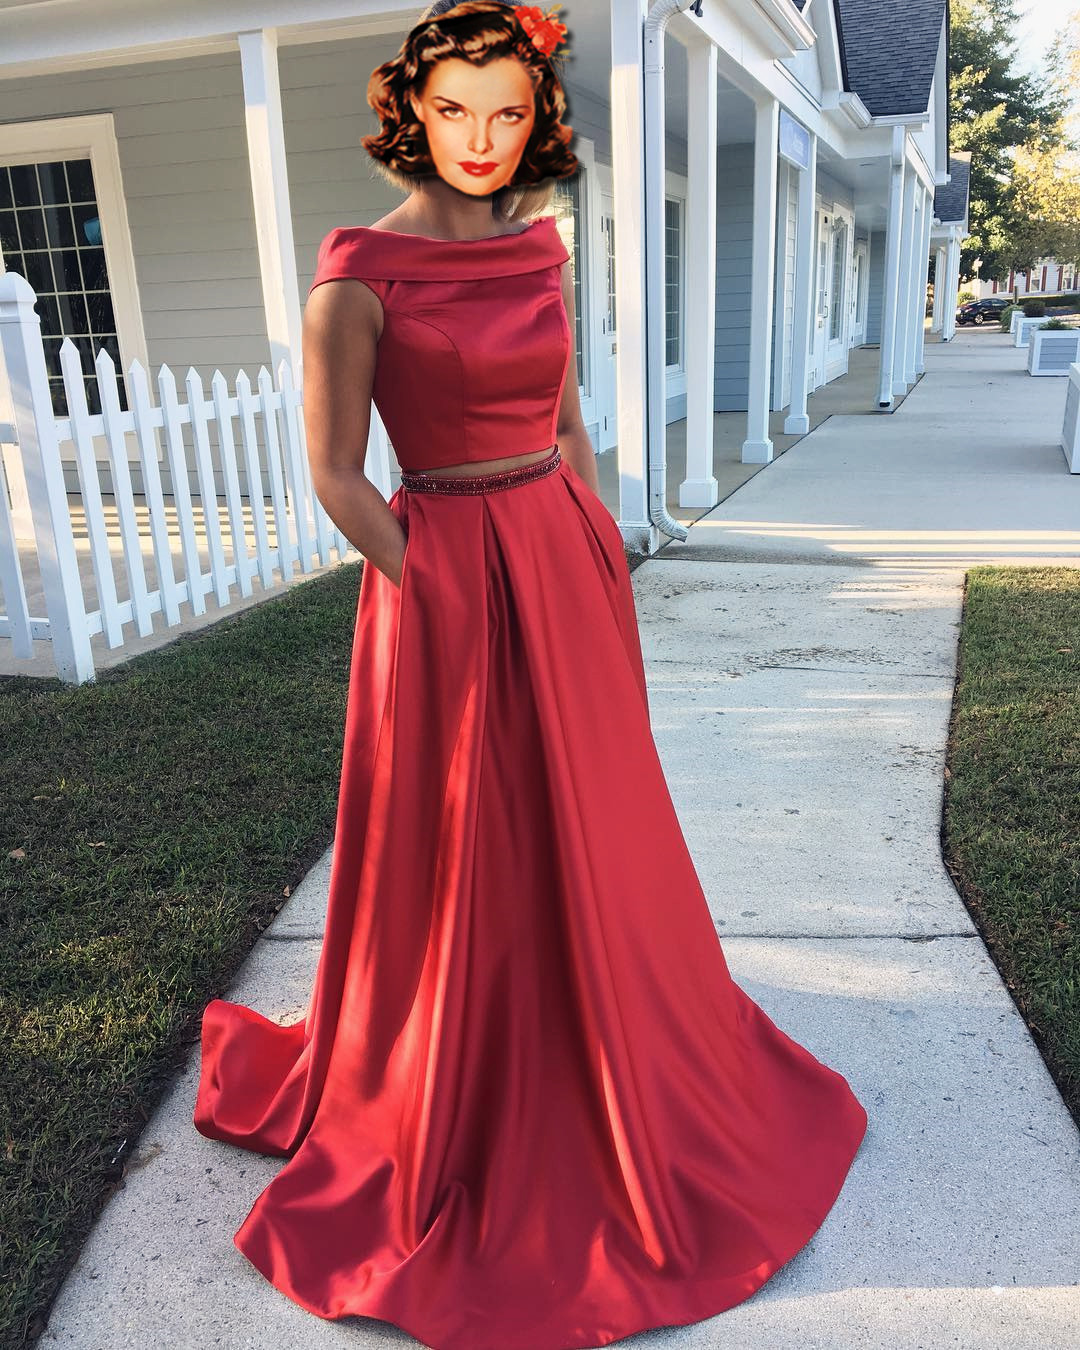 2aa84362d2 2 Piece Homecoming Dress With Pockets - Gomes Weine AG